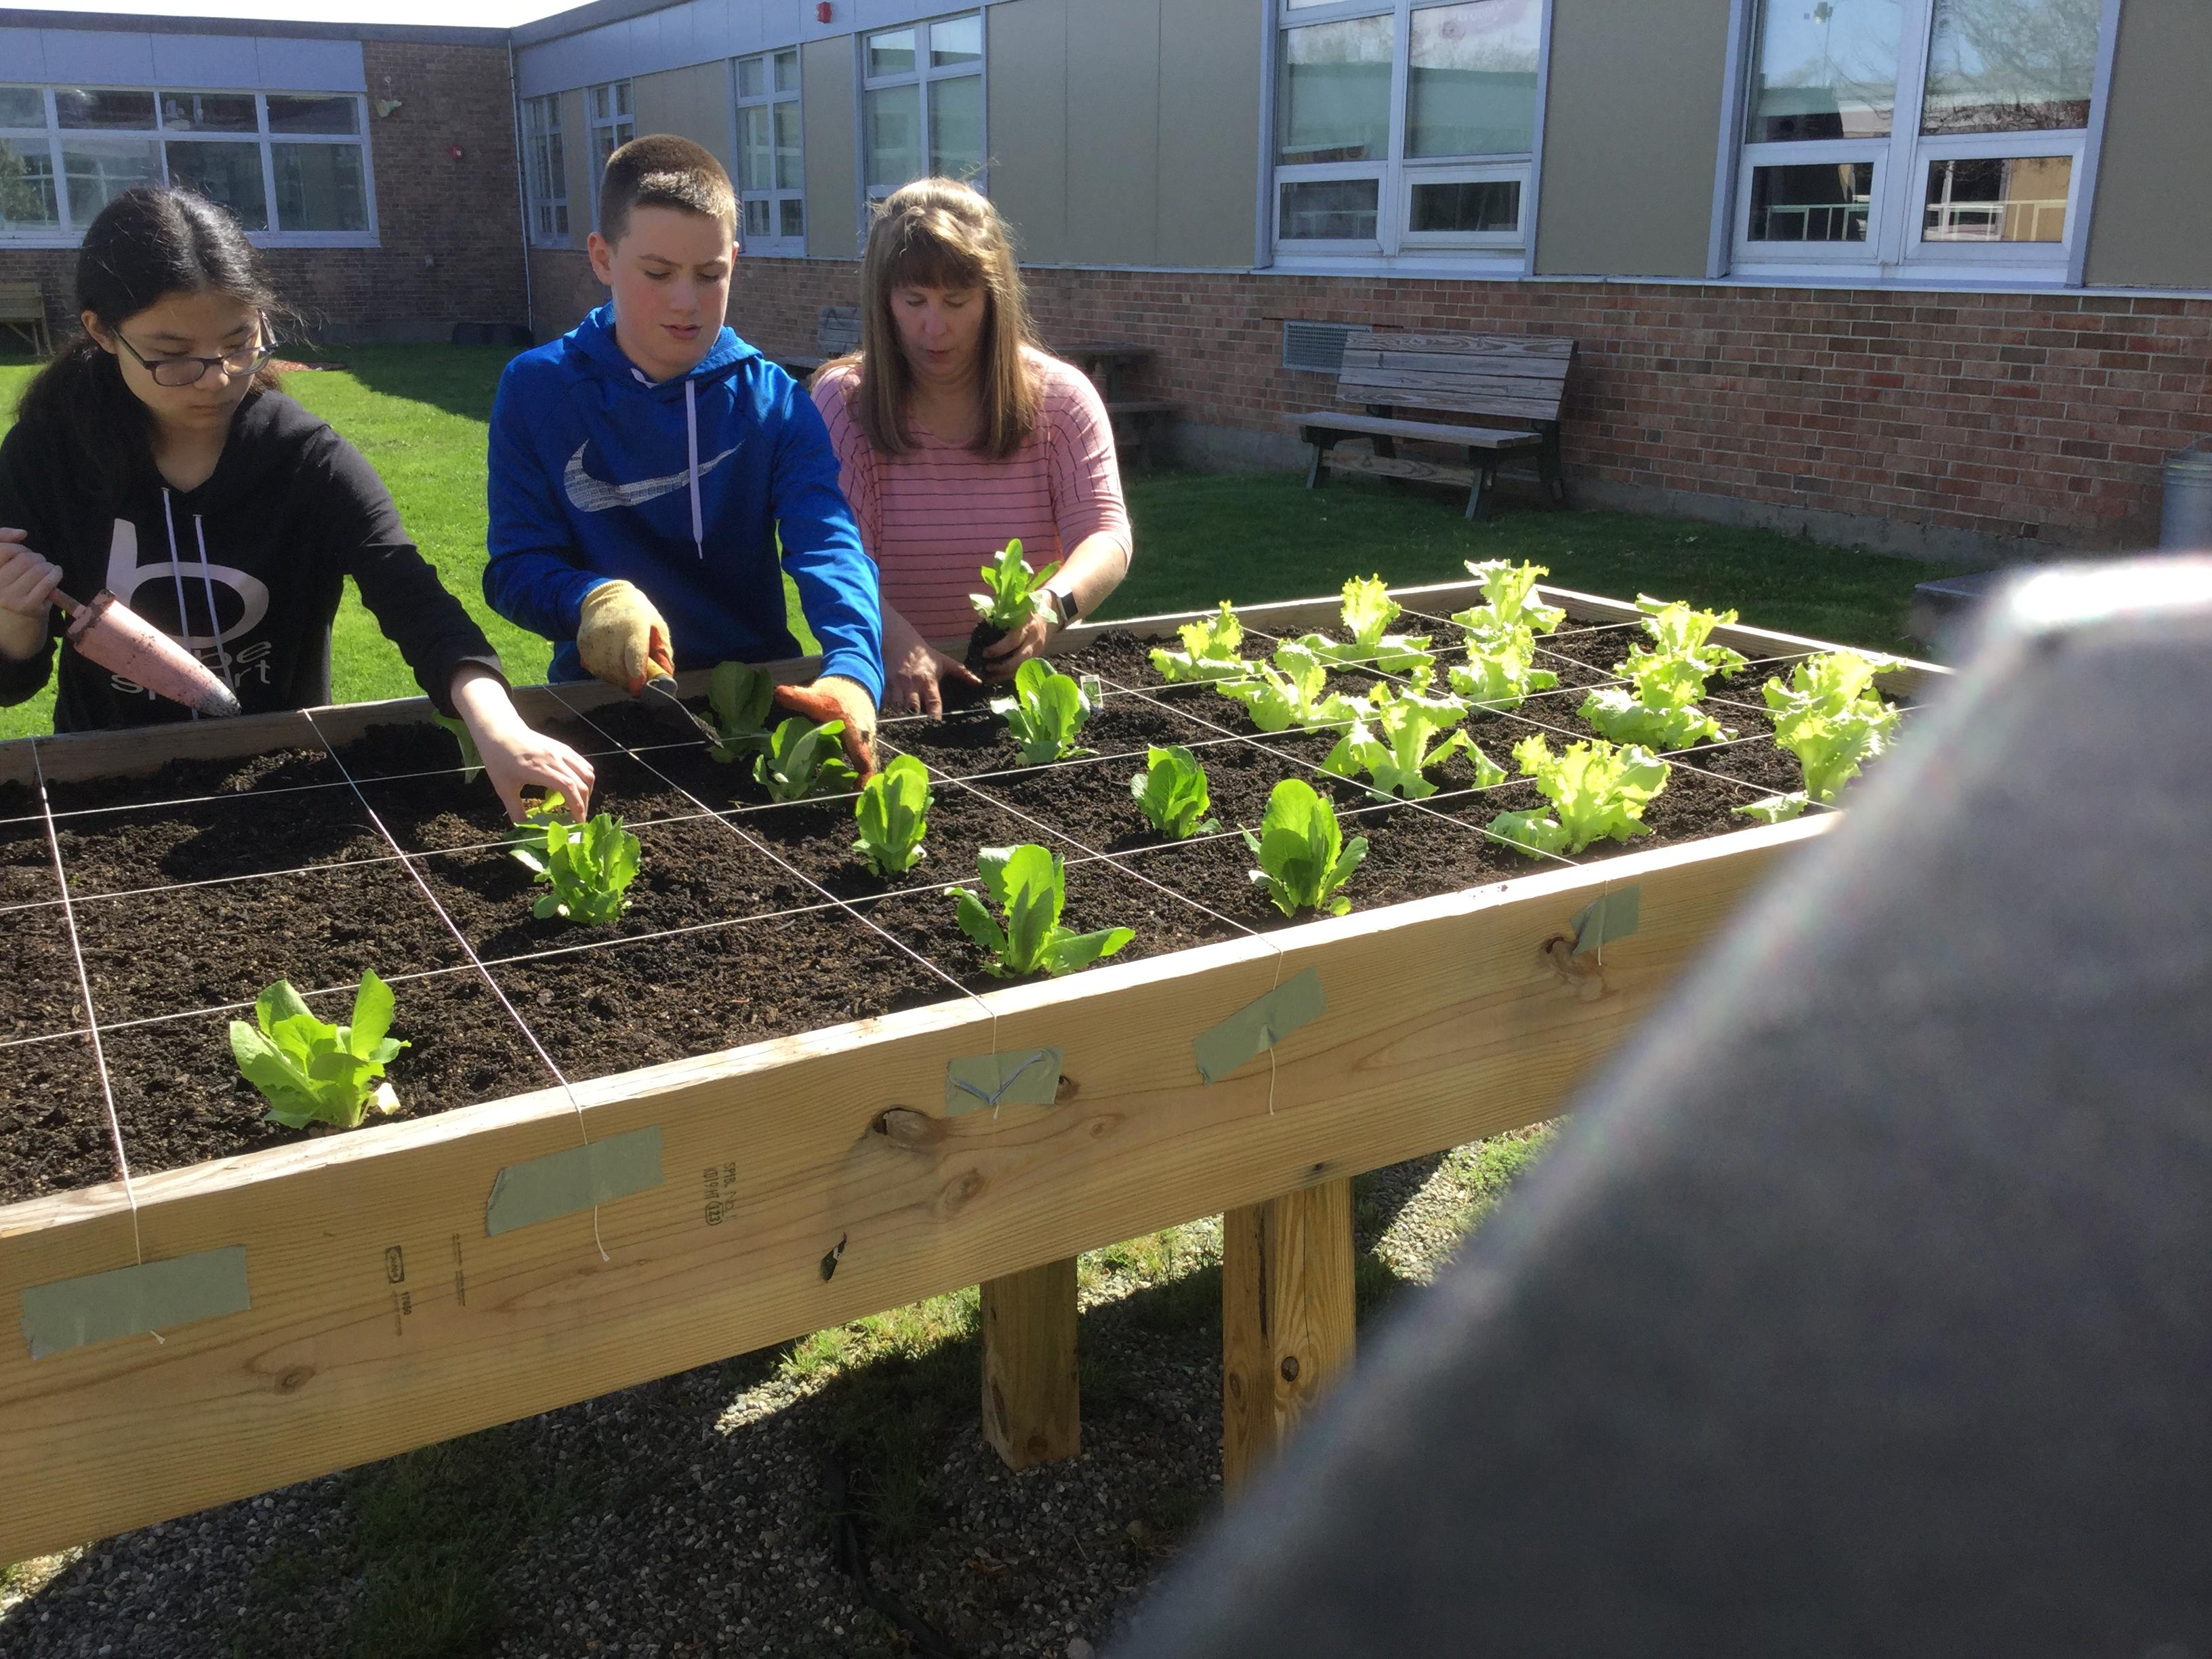 FARM TO SCHOOL PROJECT